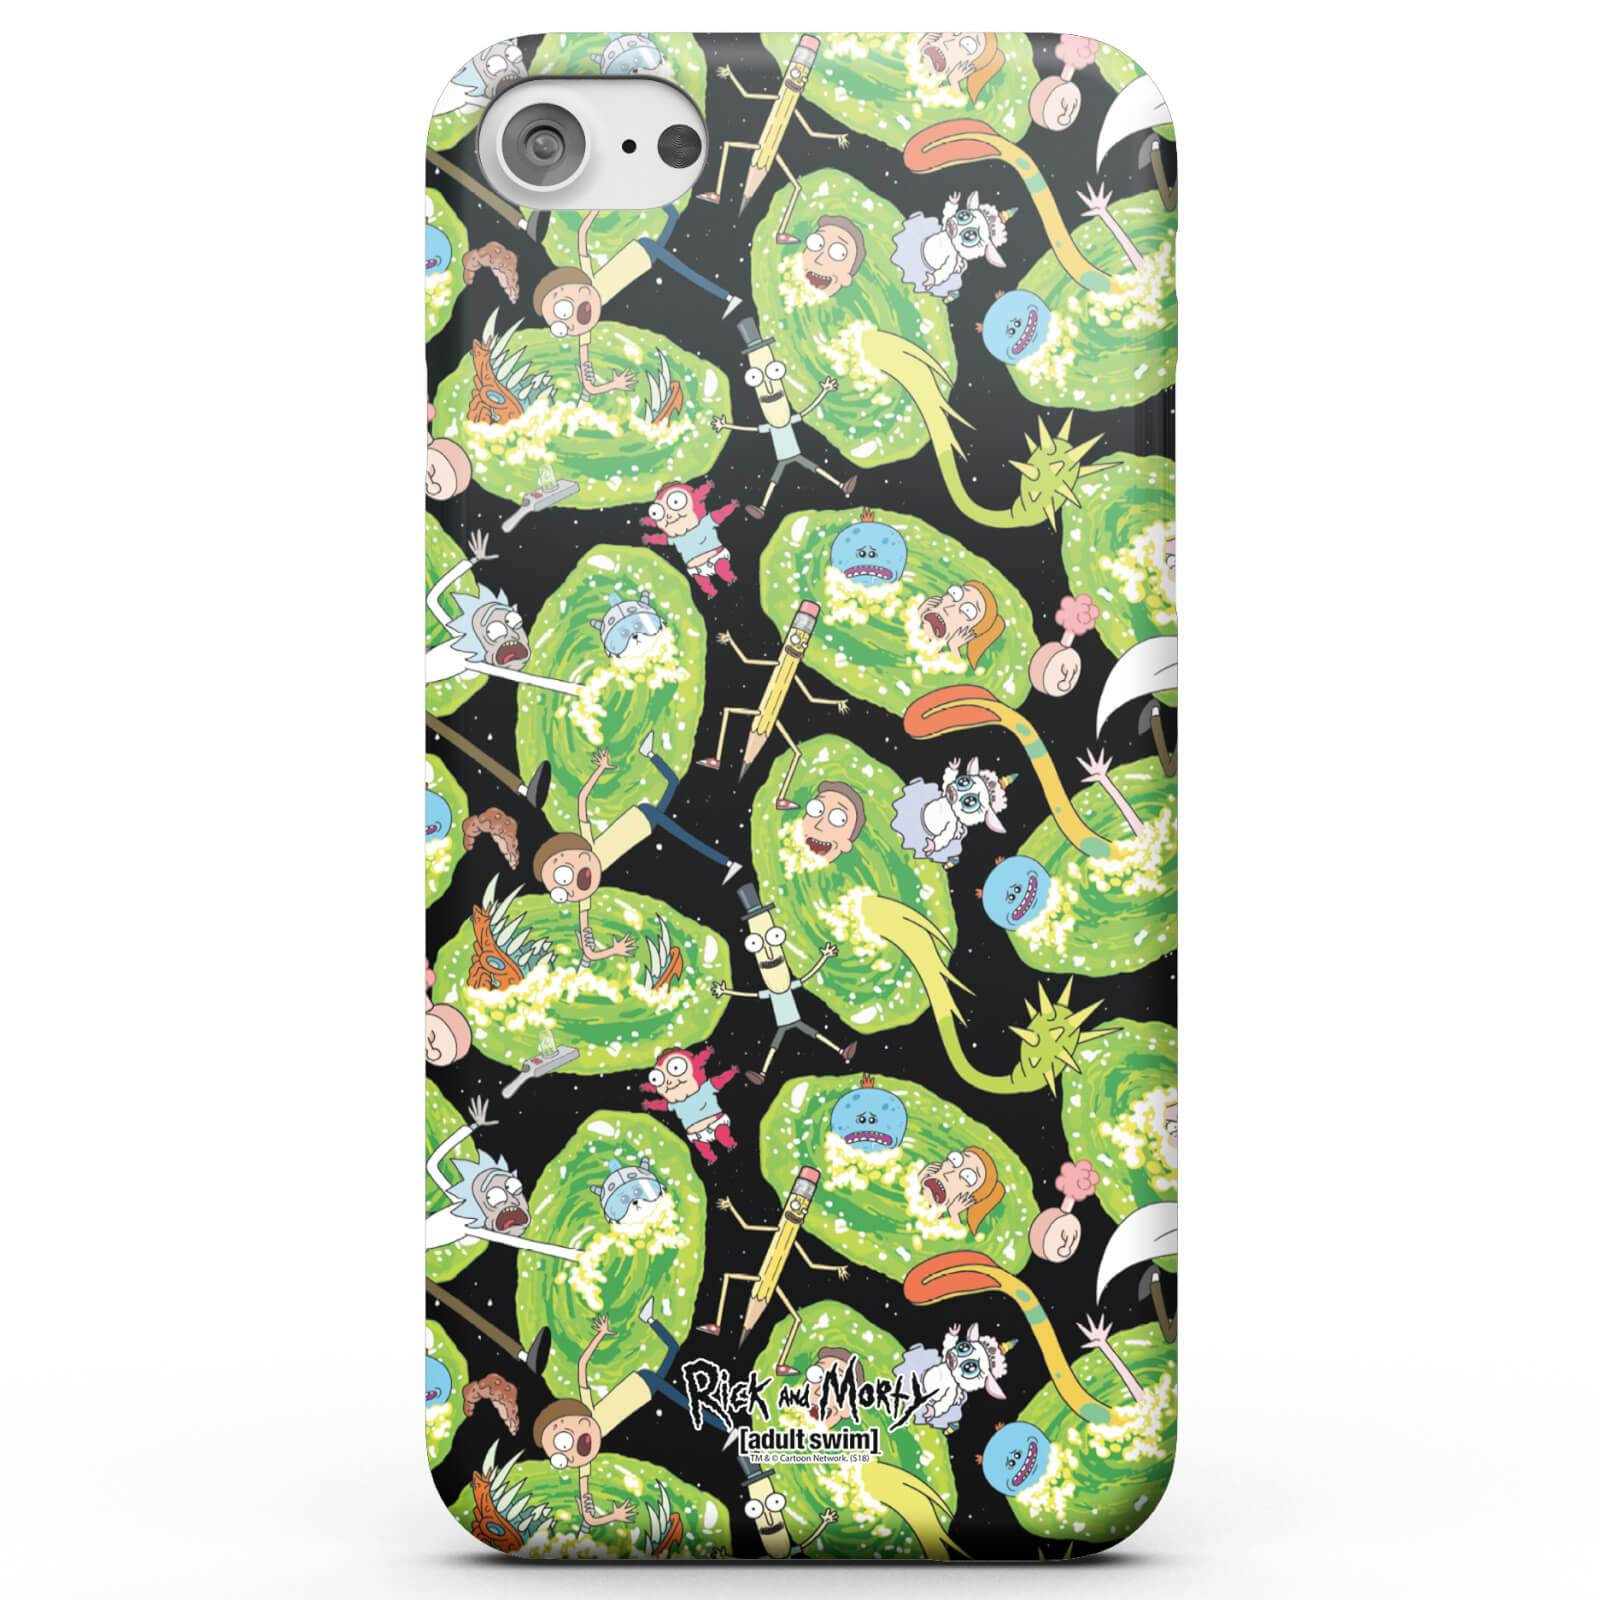 Rick and Morty Coque Smartphone Rick et Morty Portail Galactique et Personnages - iPhone & Android - iPhone 7 - Coque Double Vernie